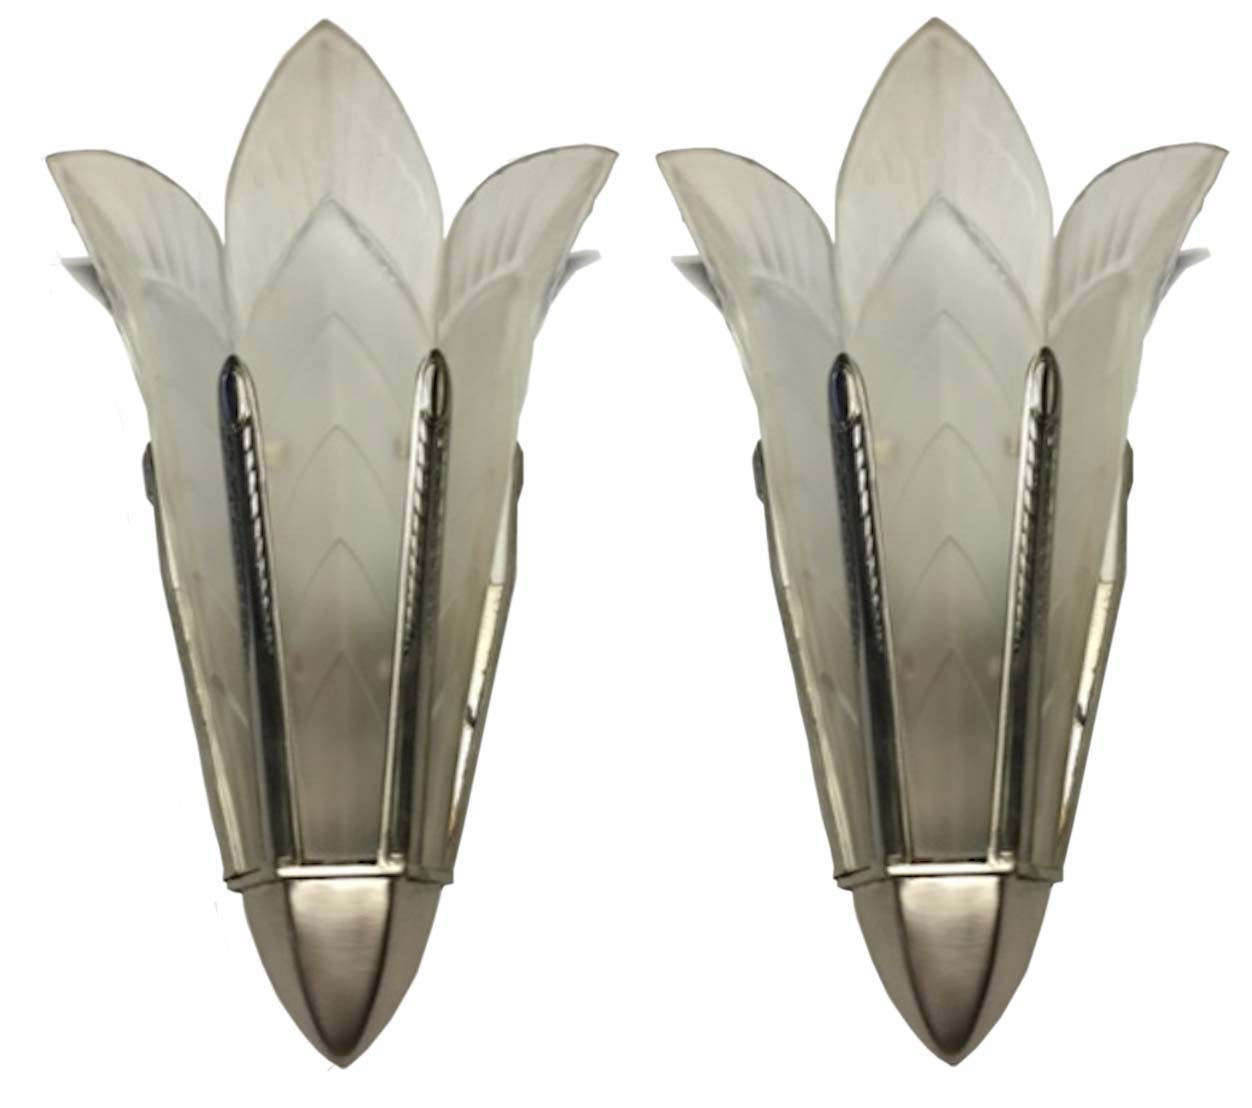 A Pair Of Signed Sabino French Art Deco Wall Sconces  sc 1 st  Modernism & A Pair Of Signed Sabino French Art Deco Wall Sconces | Modernism